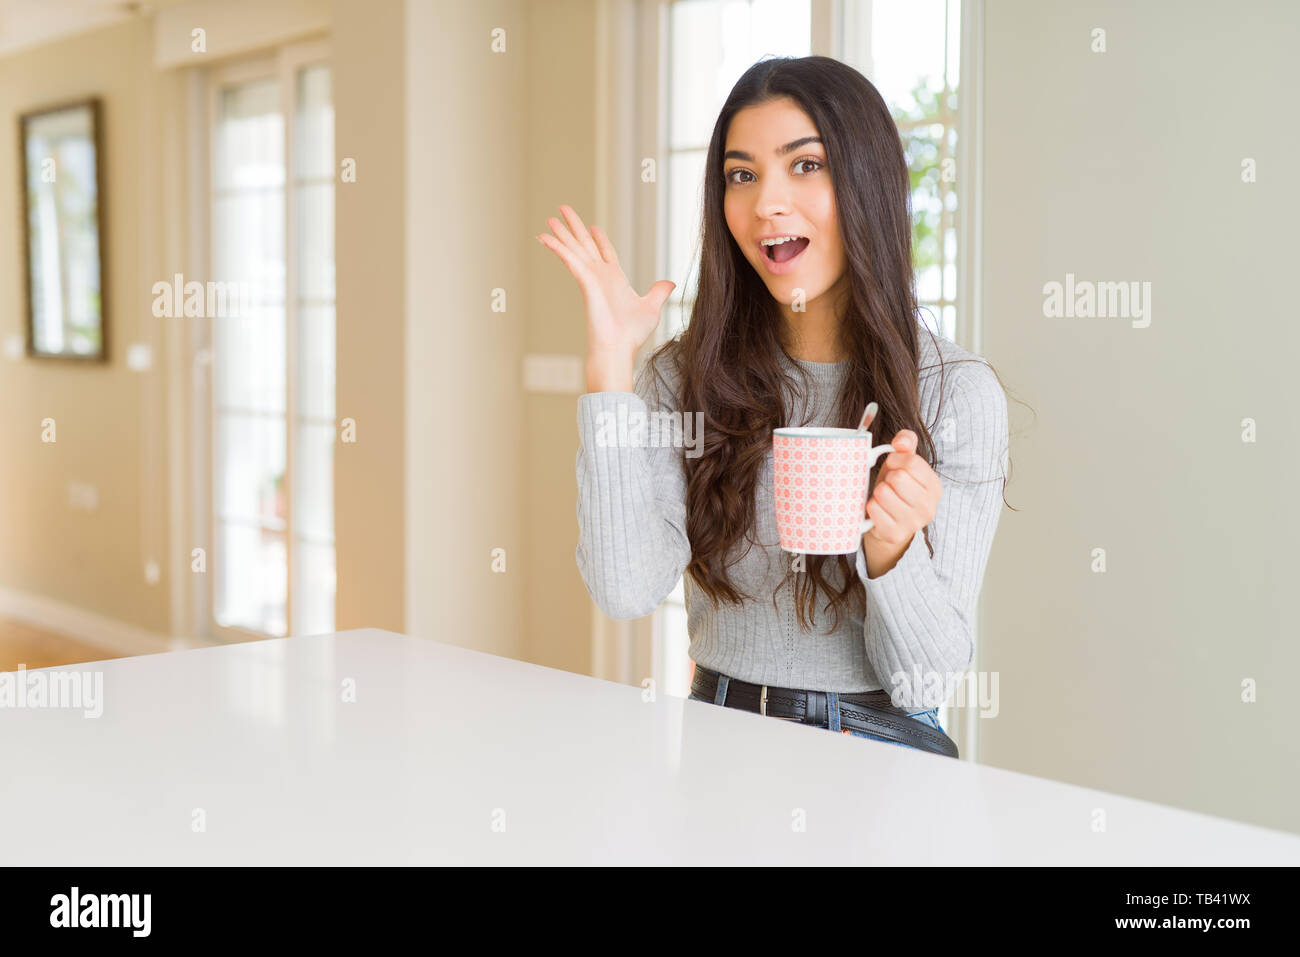 d67f0a433b6 Young woman drinking a cup of coffee very happy and excited, winner  expression celebrating victory screaming with big smile and raised hands